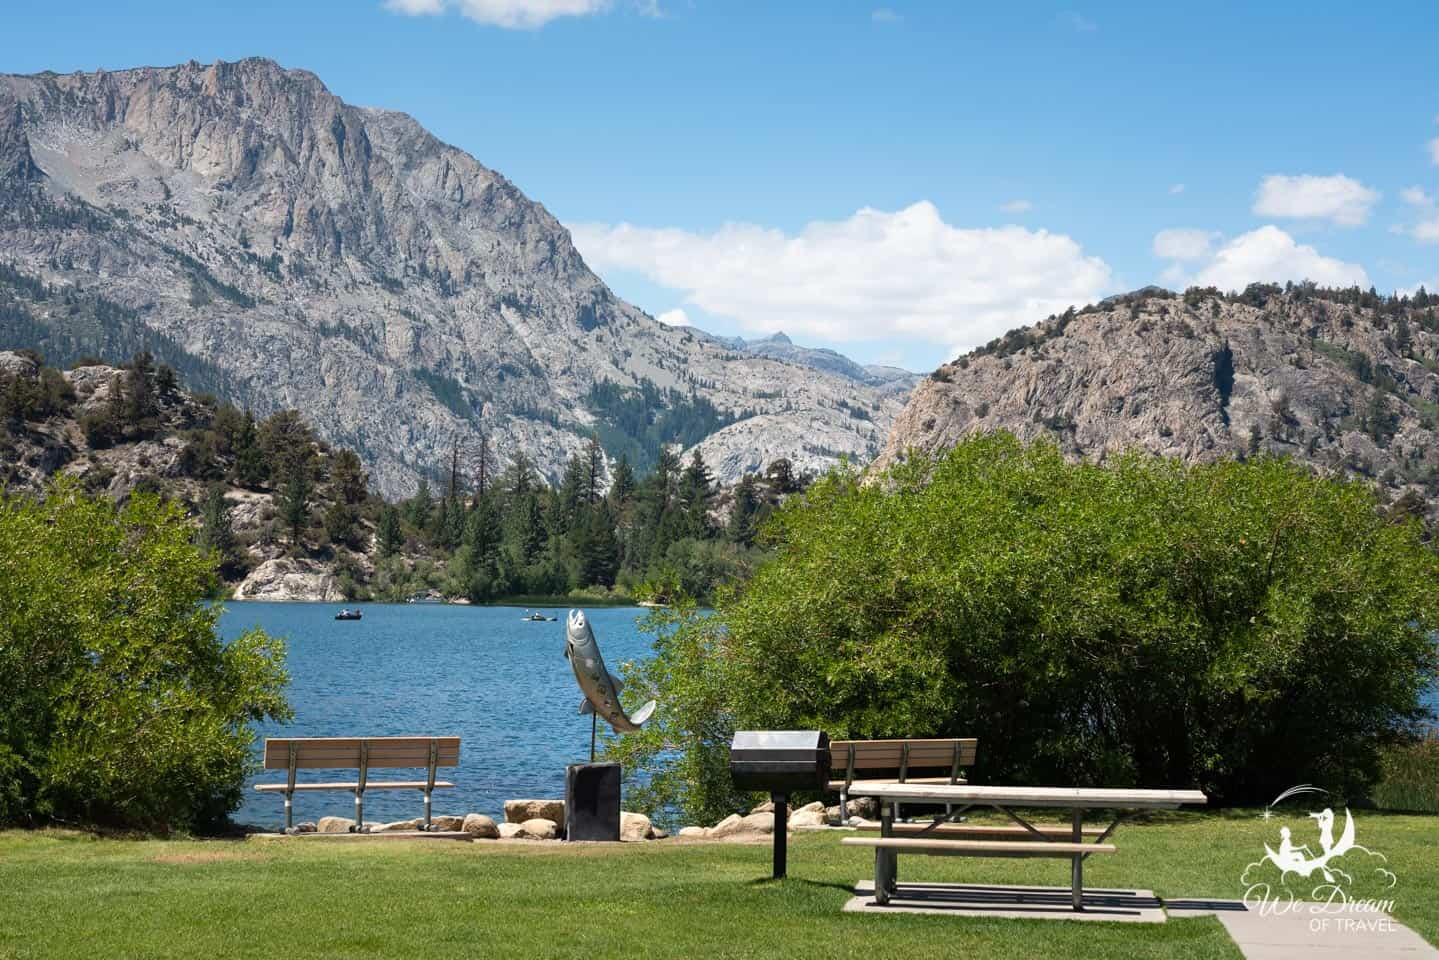 The town of June Lakes has all amenities you might expect, including a picturesque park to enjoy a summer afternoon picnic.